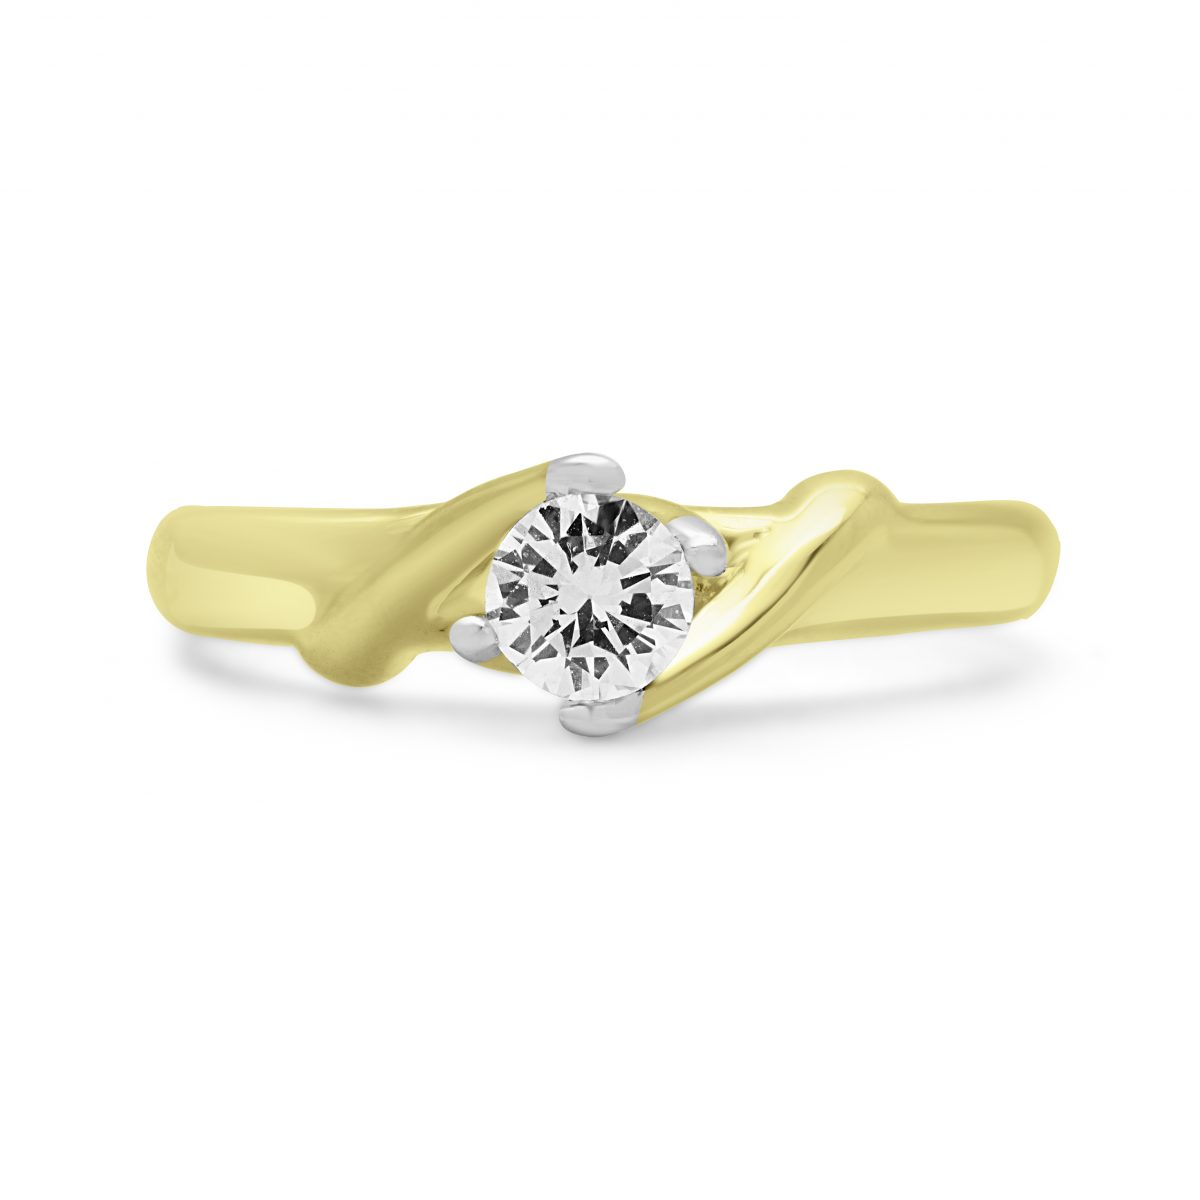 genuine princess ladies promise ring cut white solitaire engagement rng jewellery diamond gold